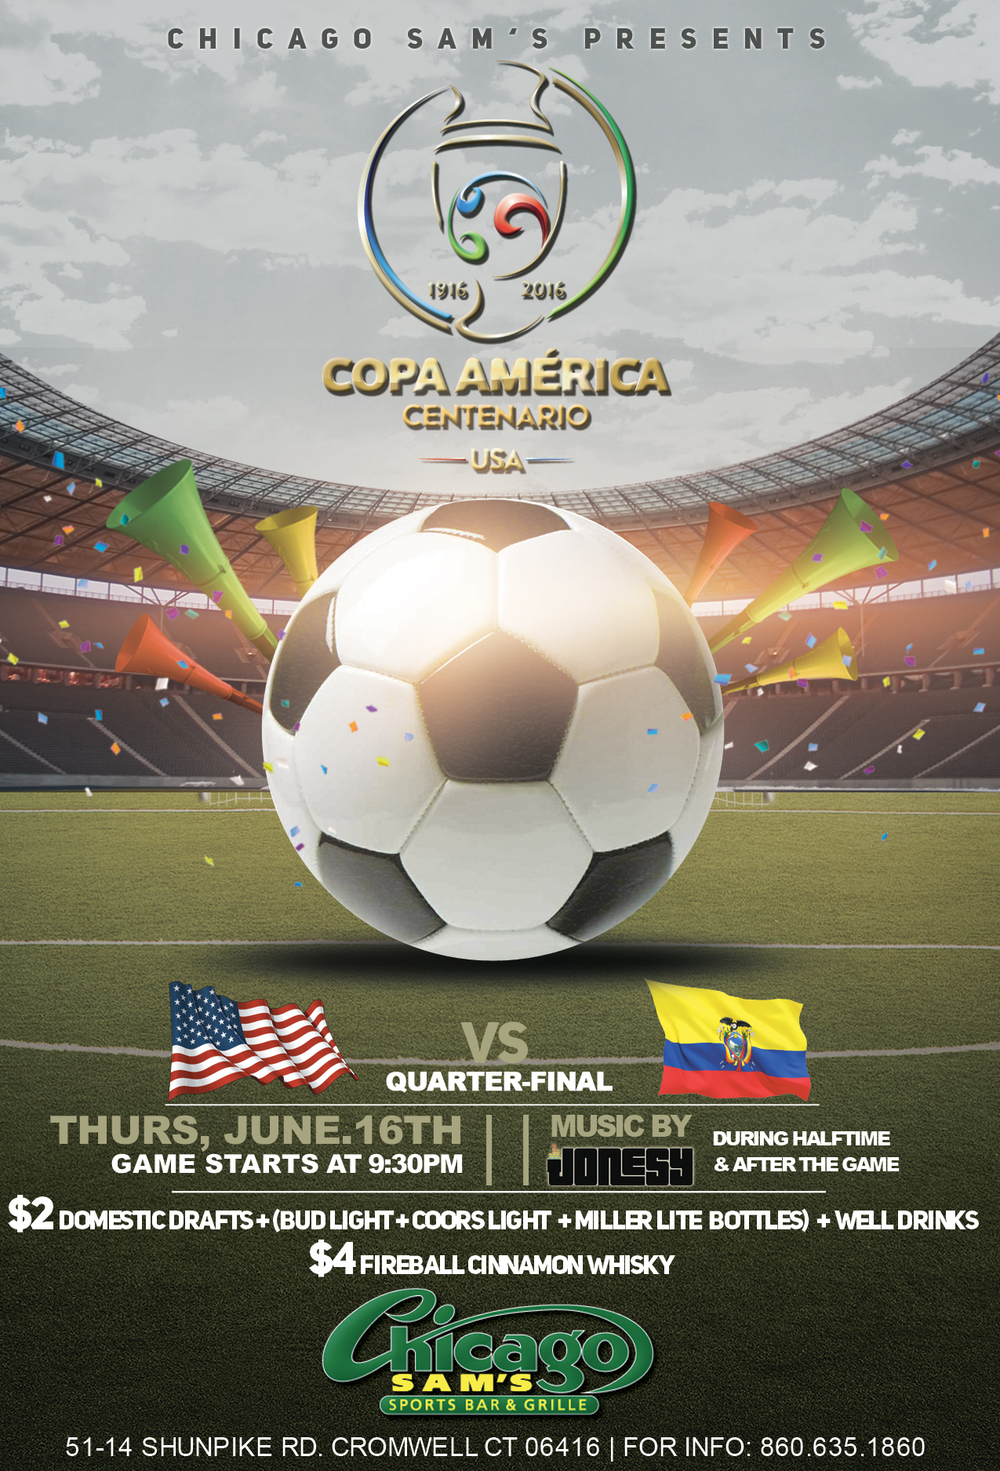 Thursday, June 16th join us at Chicago Sam's in Cromwell, CT for the Copa Americana Quarter-Final Match between Usa & Ecuador.  Come cheer on the Red, White & Blue with the best drink specials, big screens & staff in town!  Music by JONESY during halftime and after the game.  Hope to see everyone there!